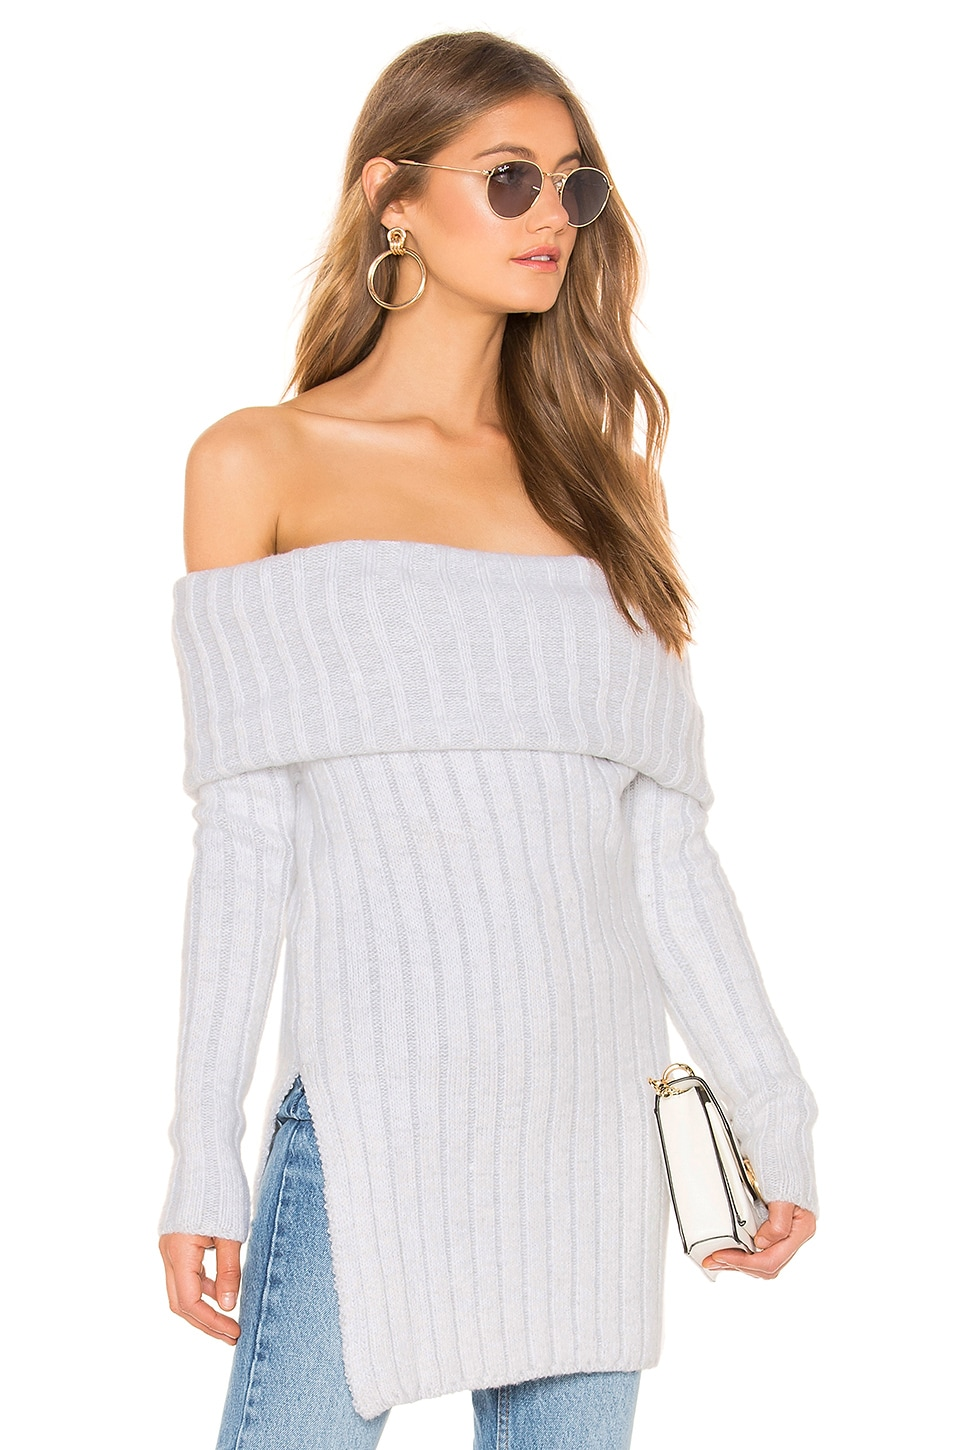 INDAH Piccolo Cowl Neck Sweater in White